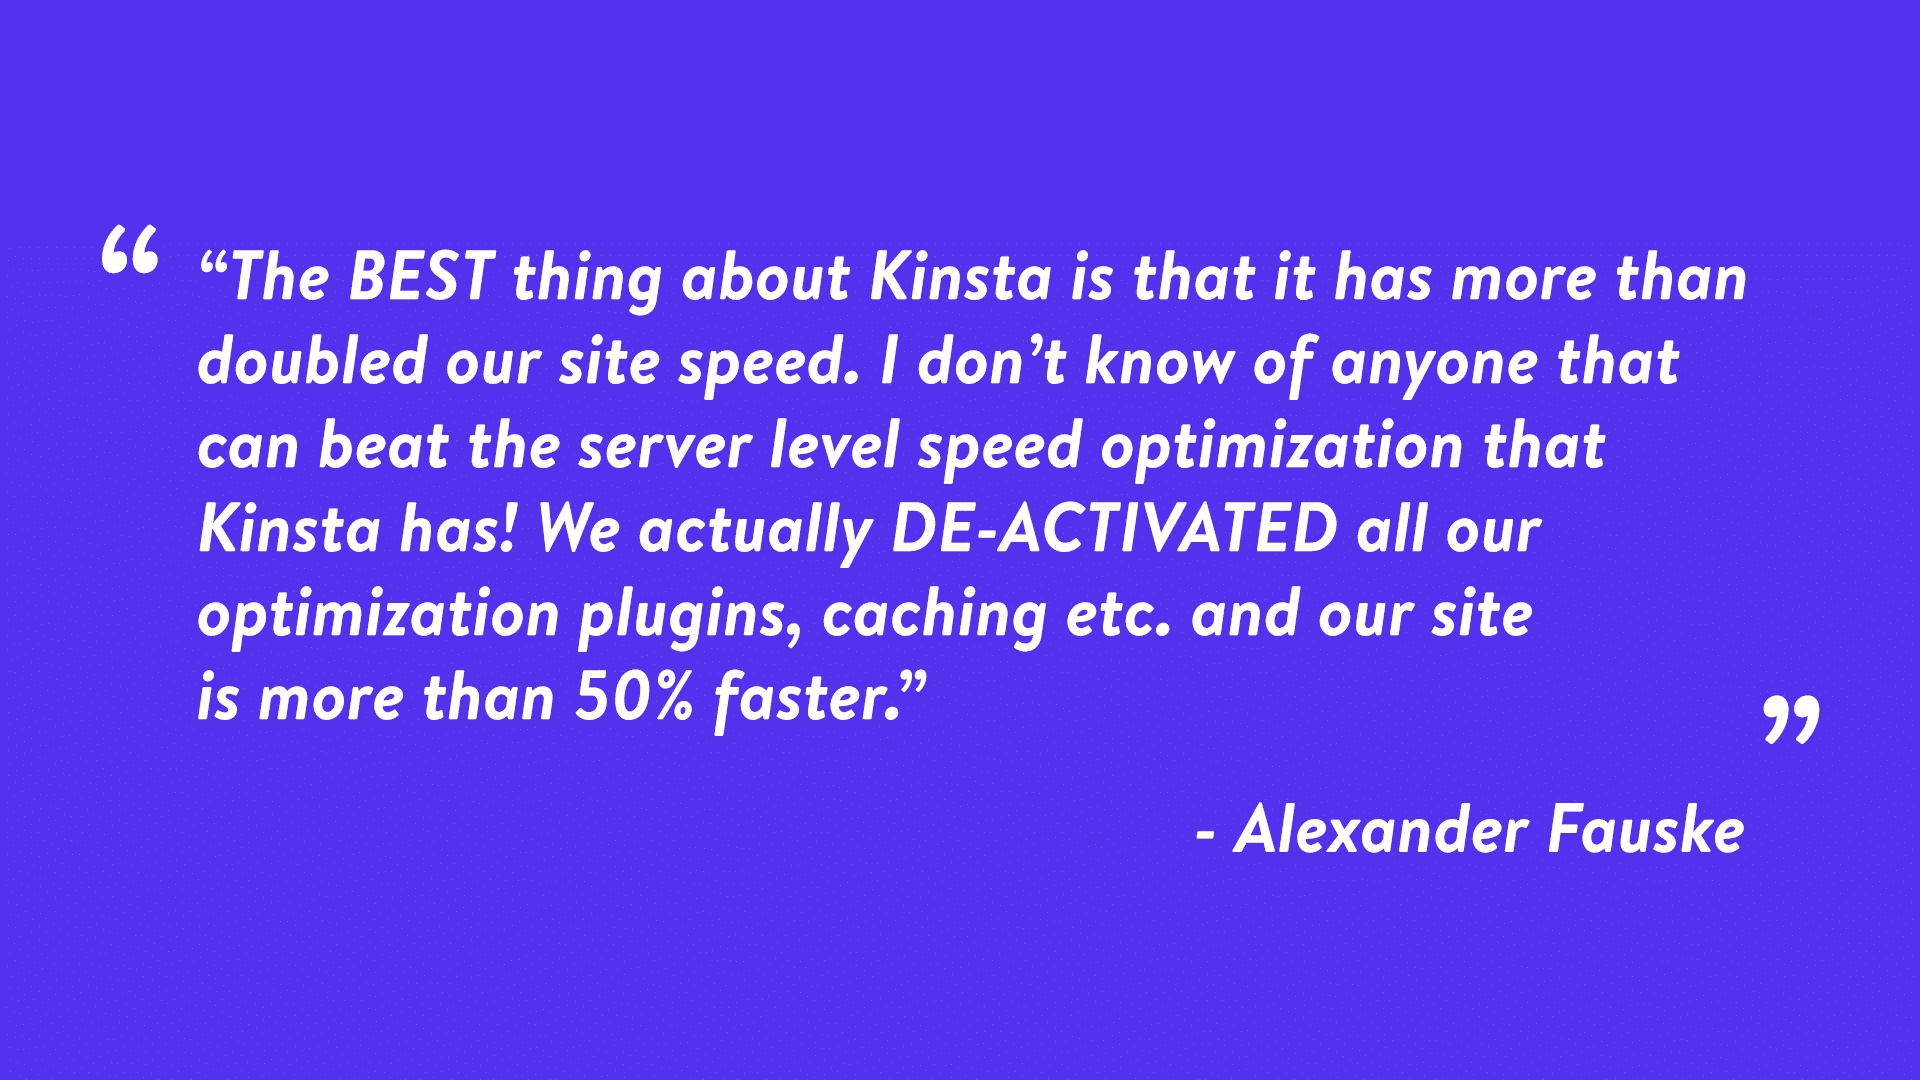 A review from a satisfied Kinsta customer.